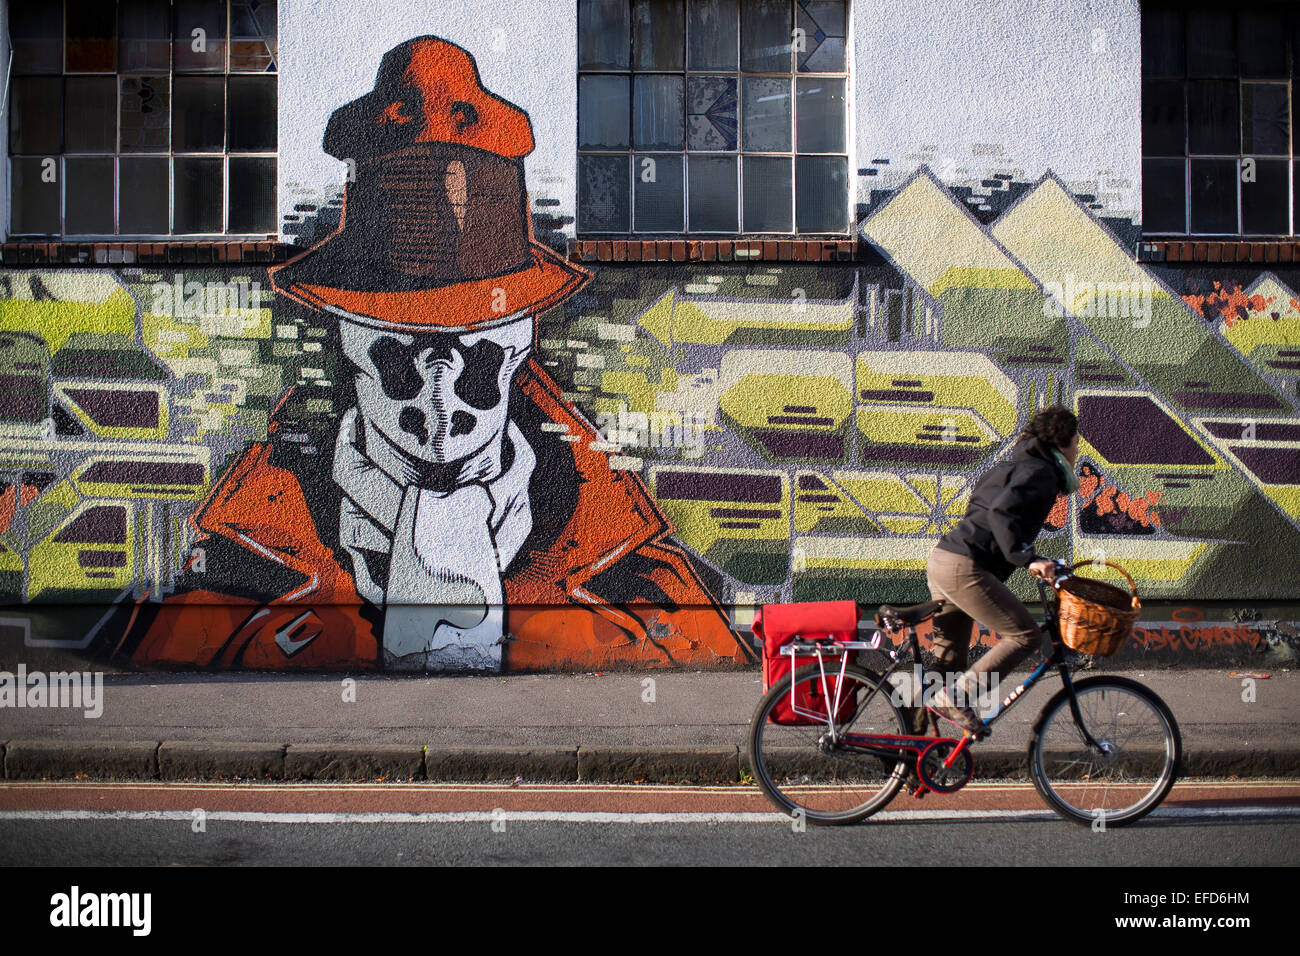 A woman cycles past a piece of urban street art and graffiti on the side of a building in Stokes Croft, Bristol. - Stock Image